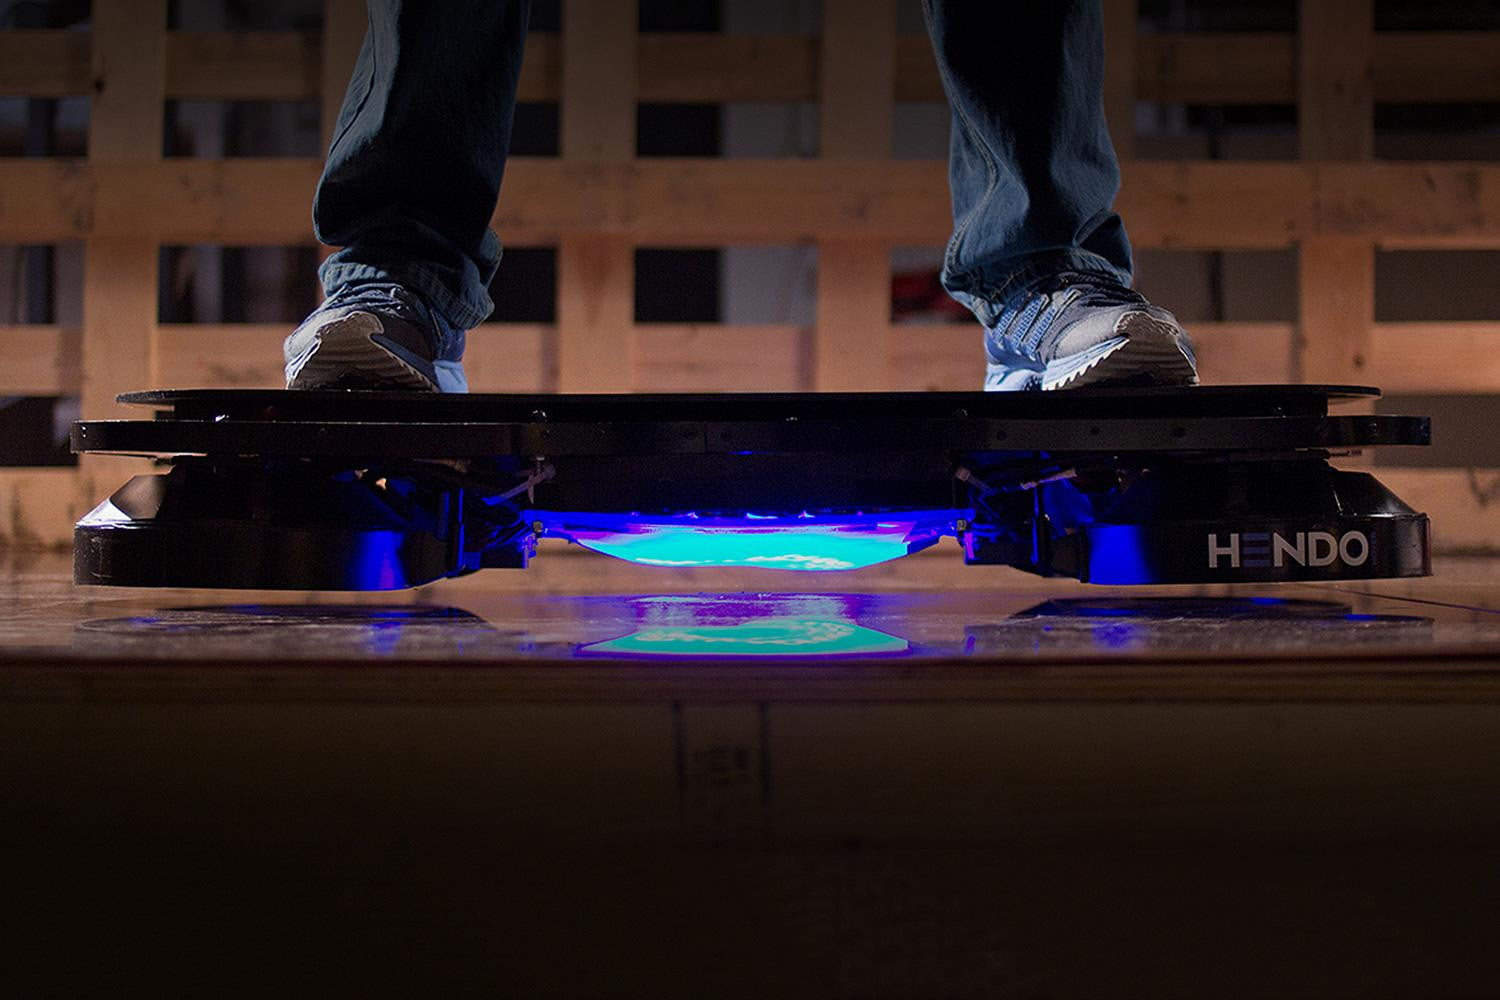 http://icdn7.digitaltrends.com/image/hendo-hoverboards-003-1500x1000.jpg